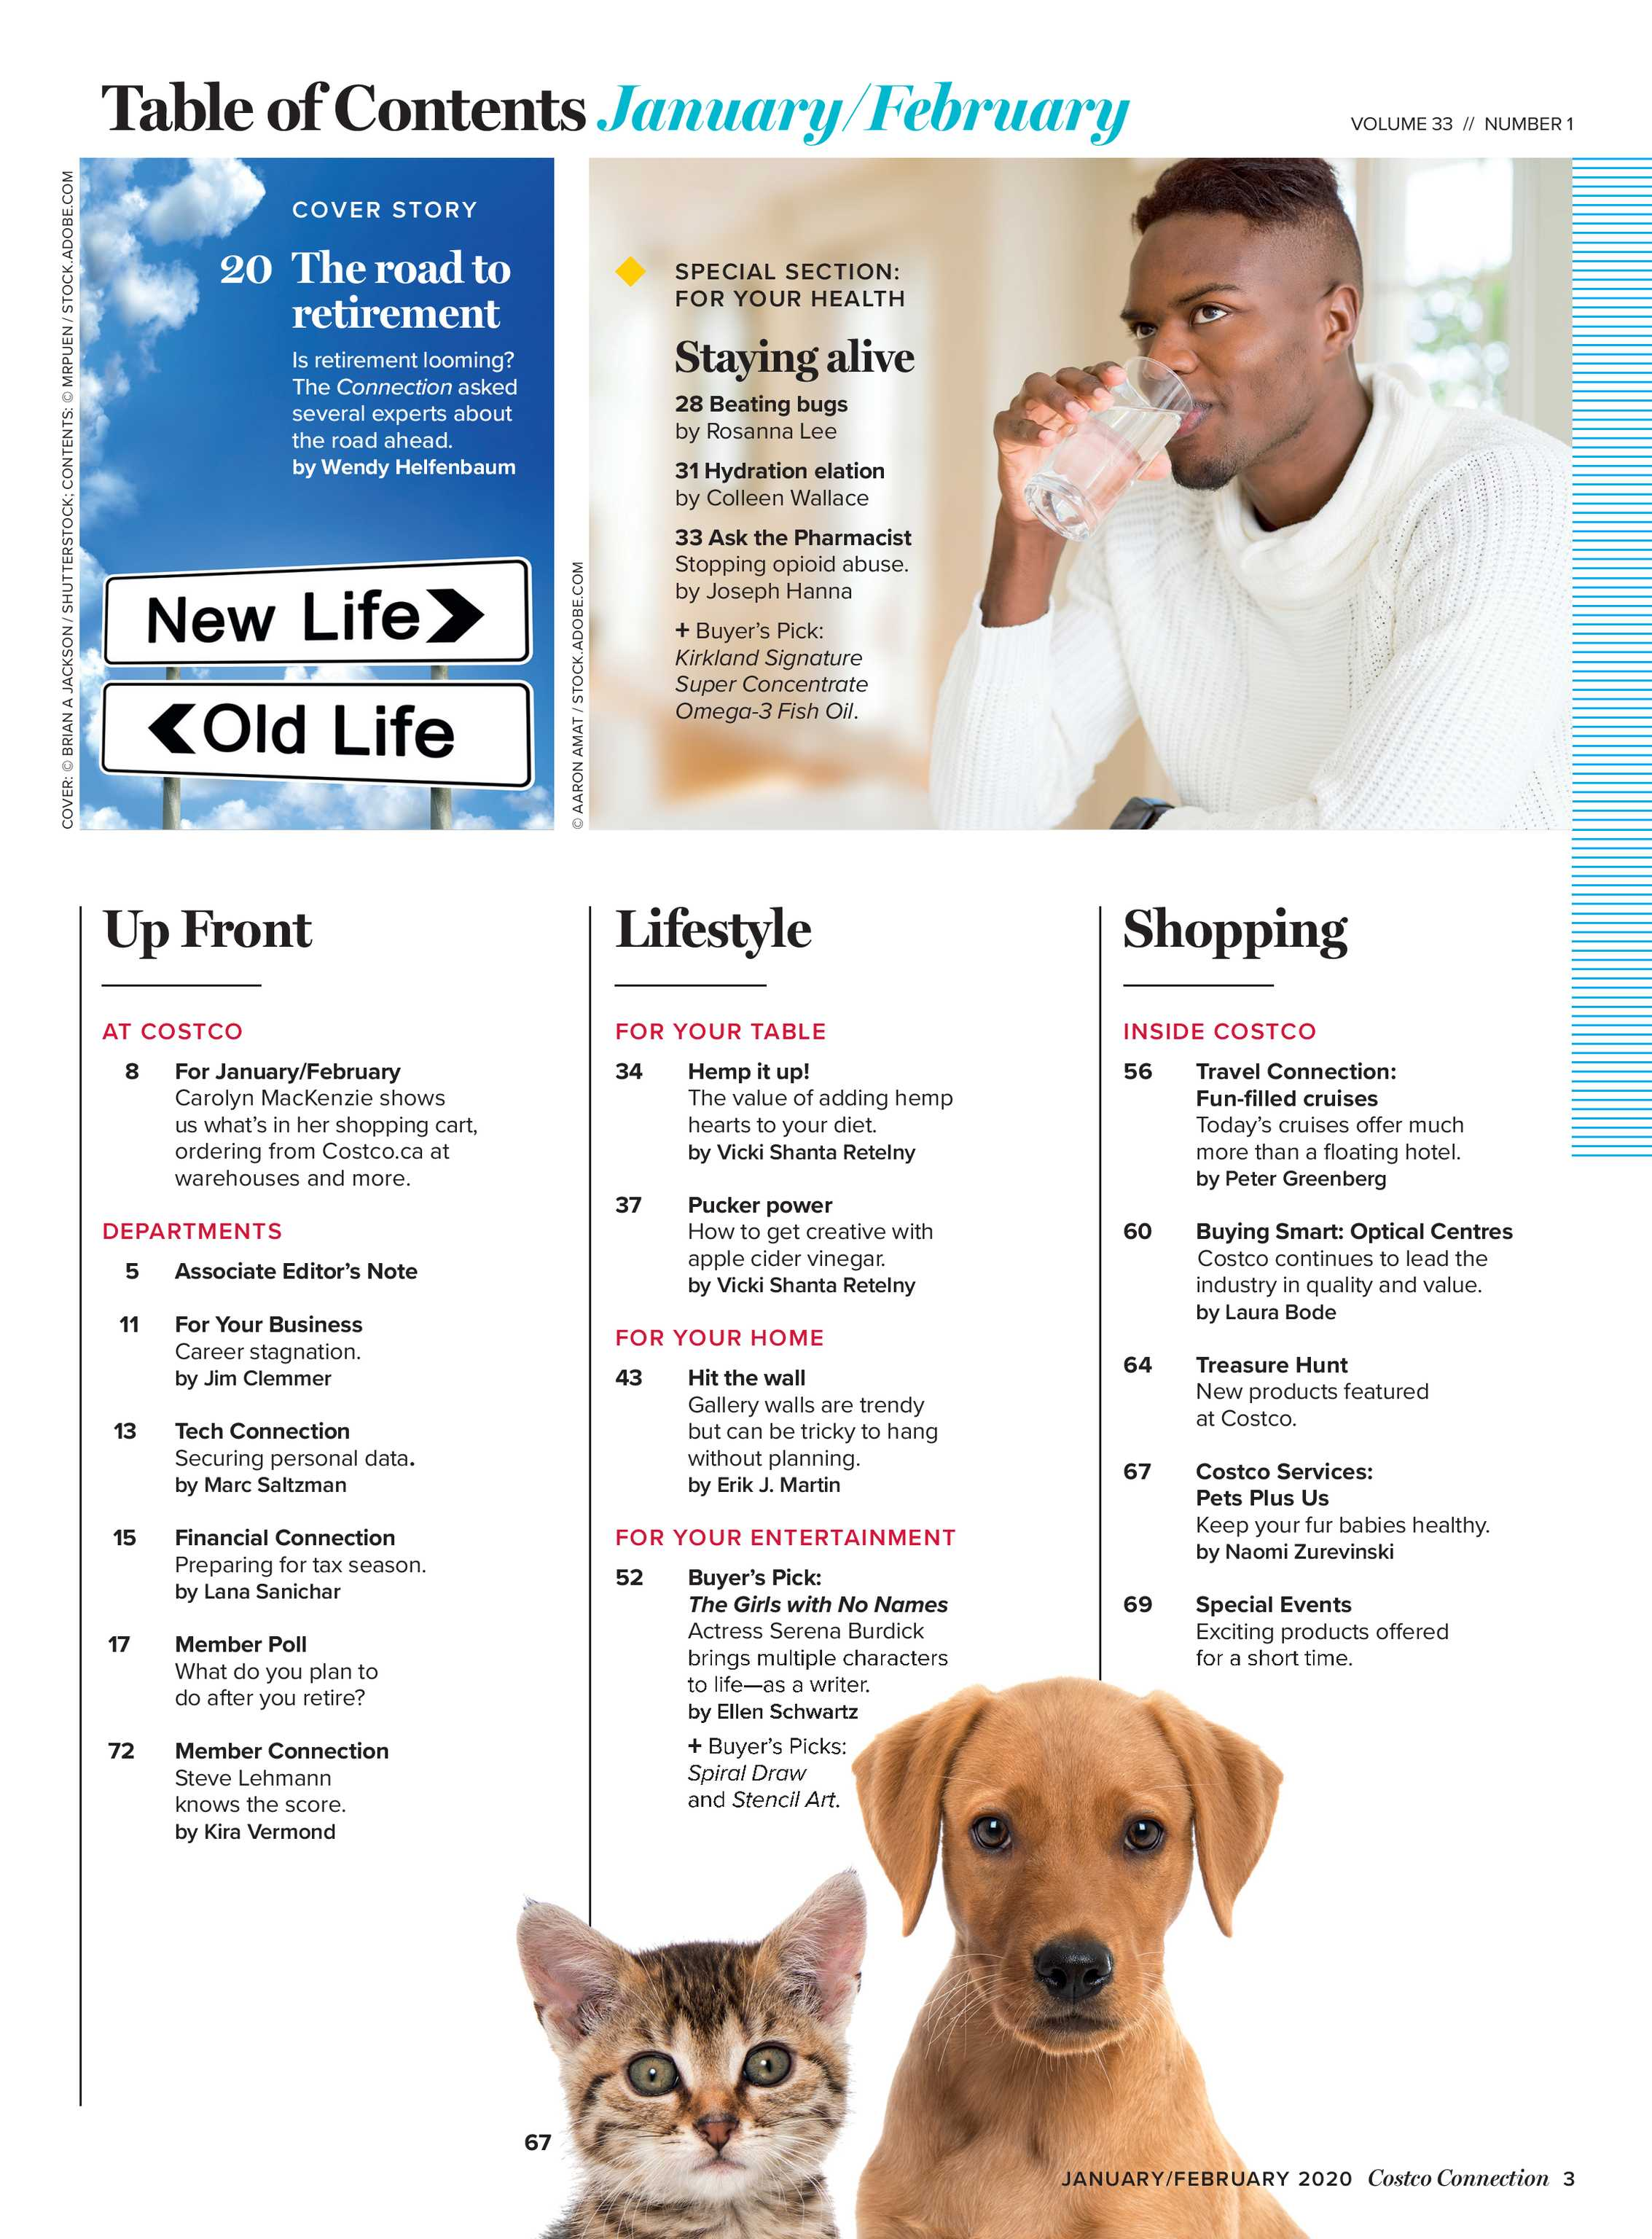 Costco Connection January February 2020 Page 3